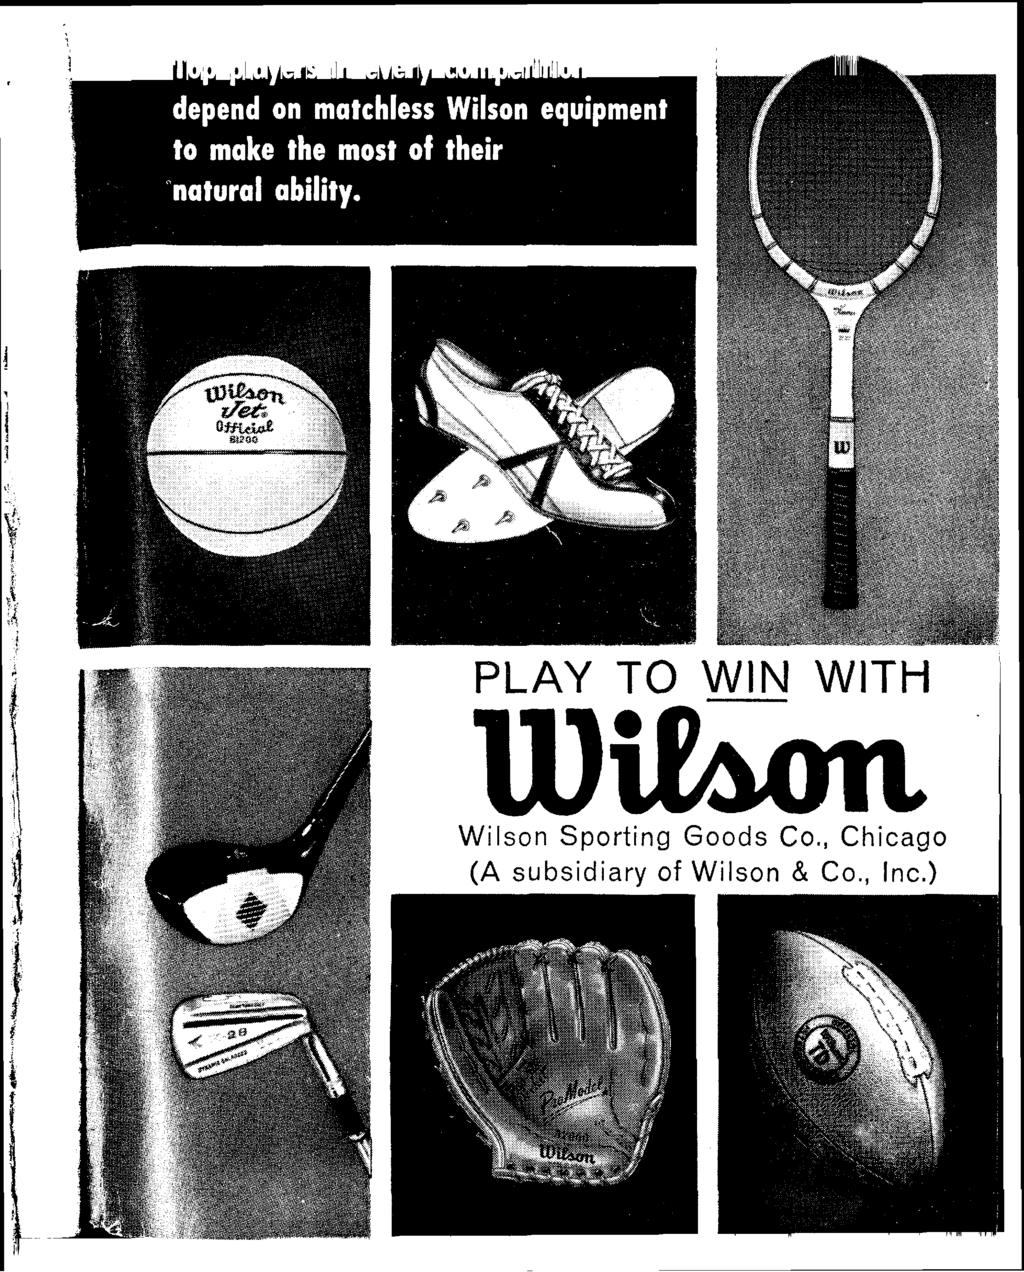 PLAY TO WIN WITH 1 Wilson Sporting Goods Co.